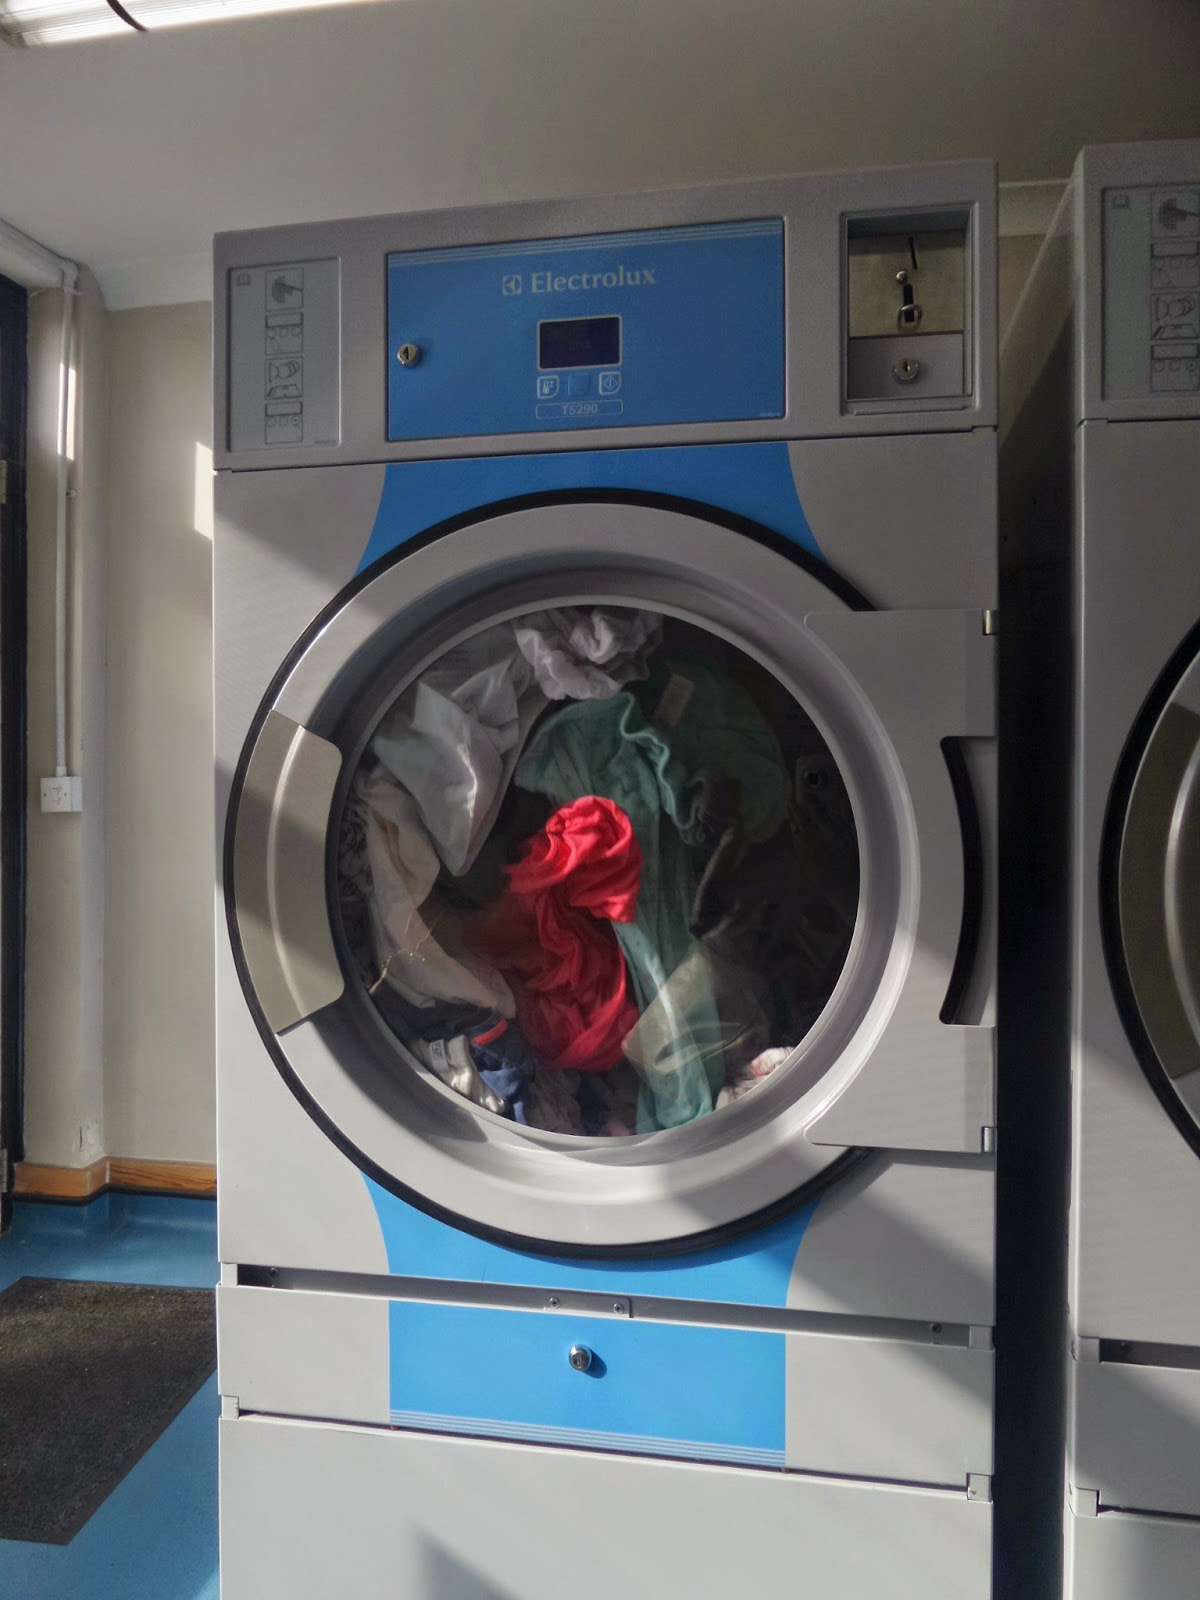 Washing in the Launderette Machine